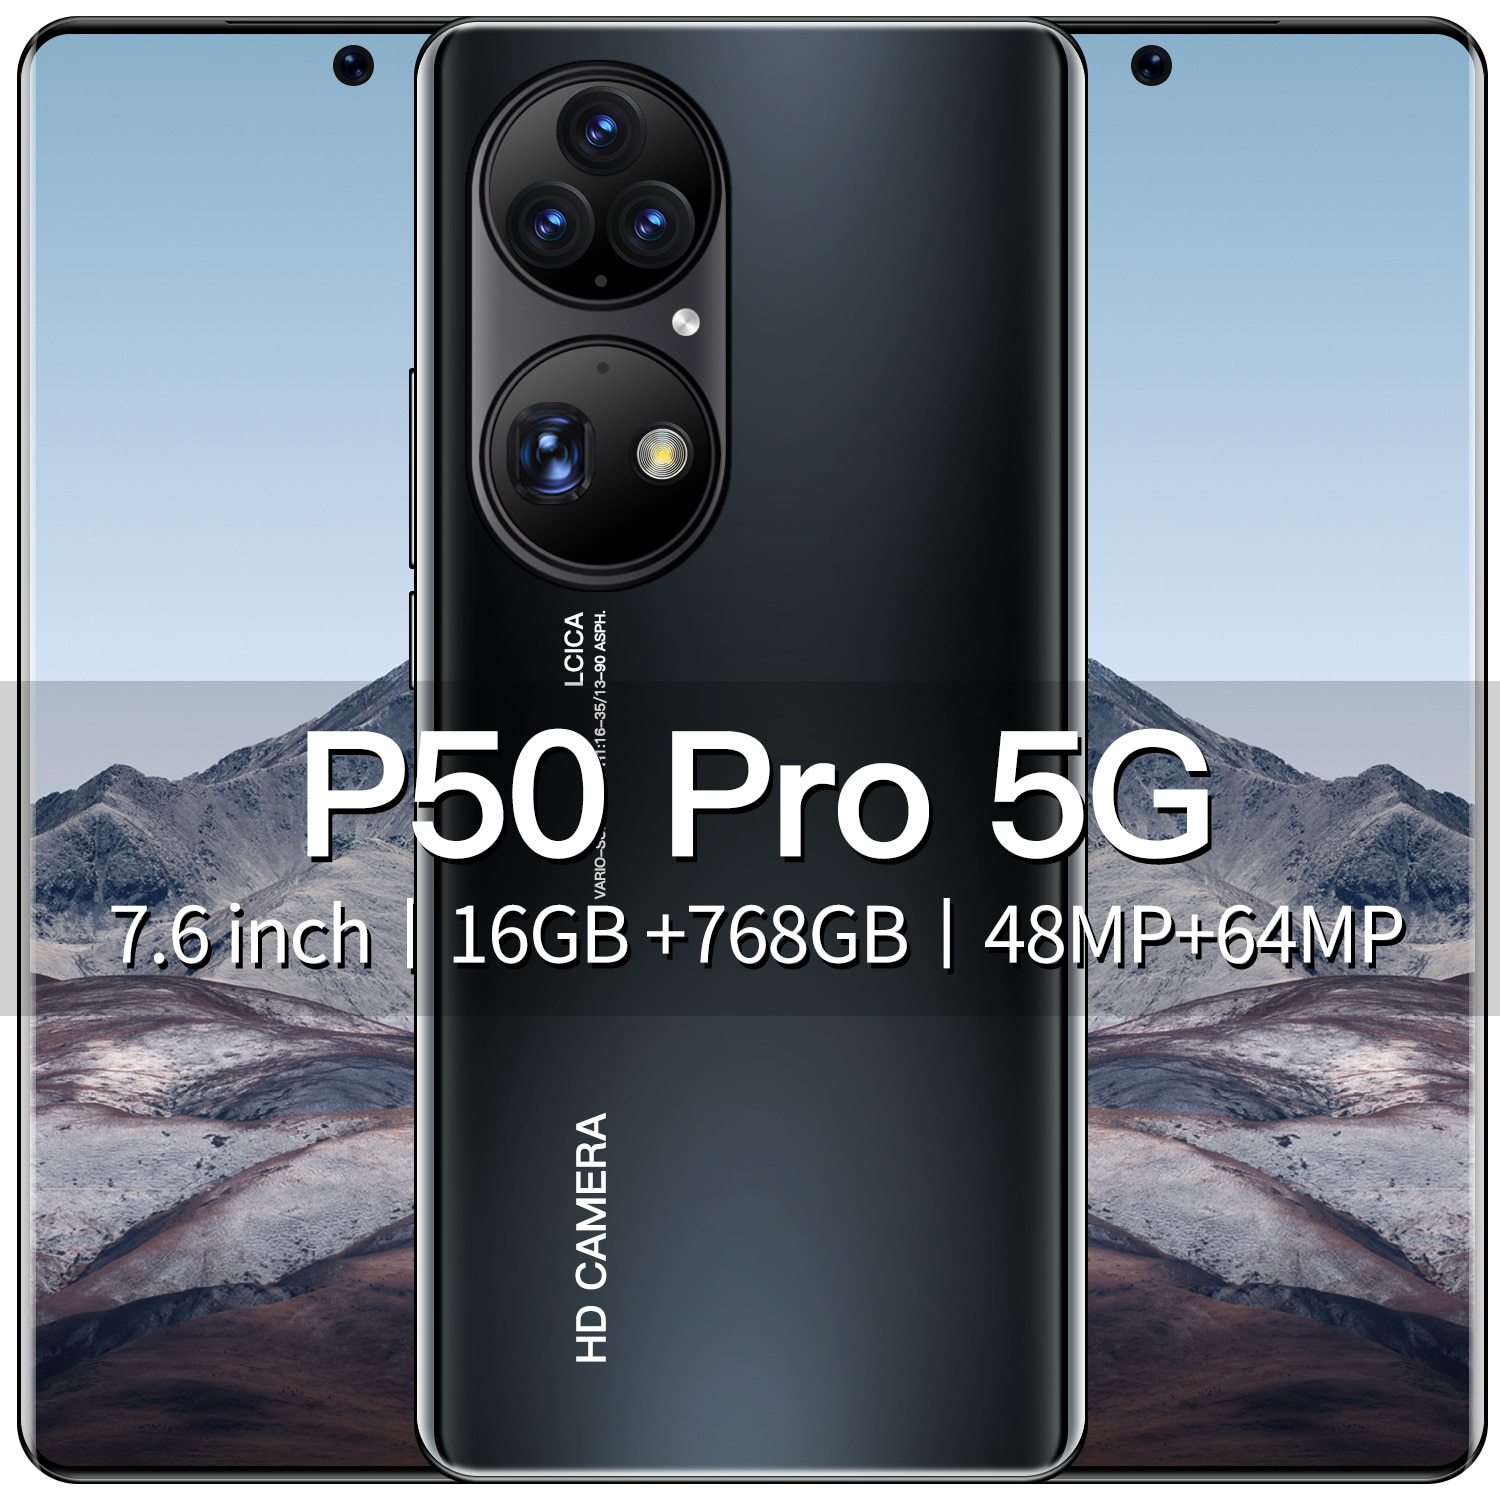 New cell phones P50 Pro, Android11.0 and 7.6Inch Full Screen 16GB+768GB Memory 5G Network Smartphone Unlocked Mobile Phones